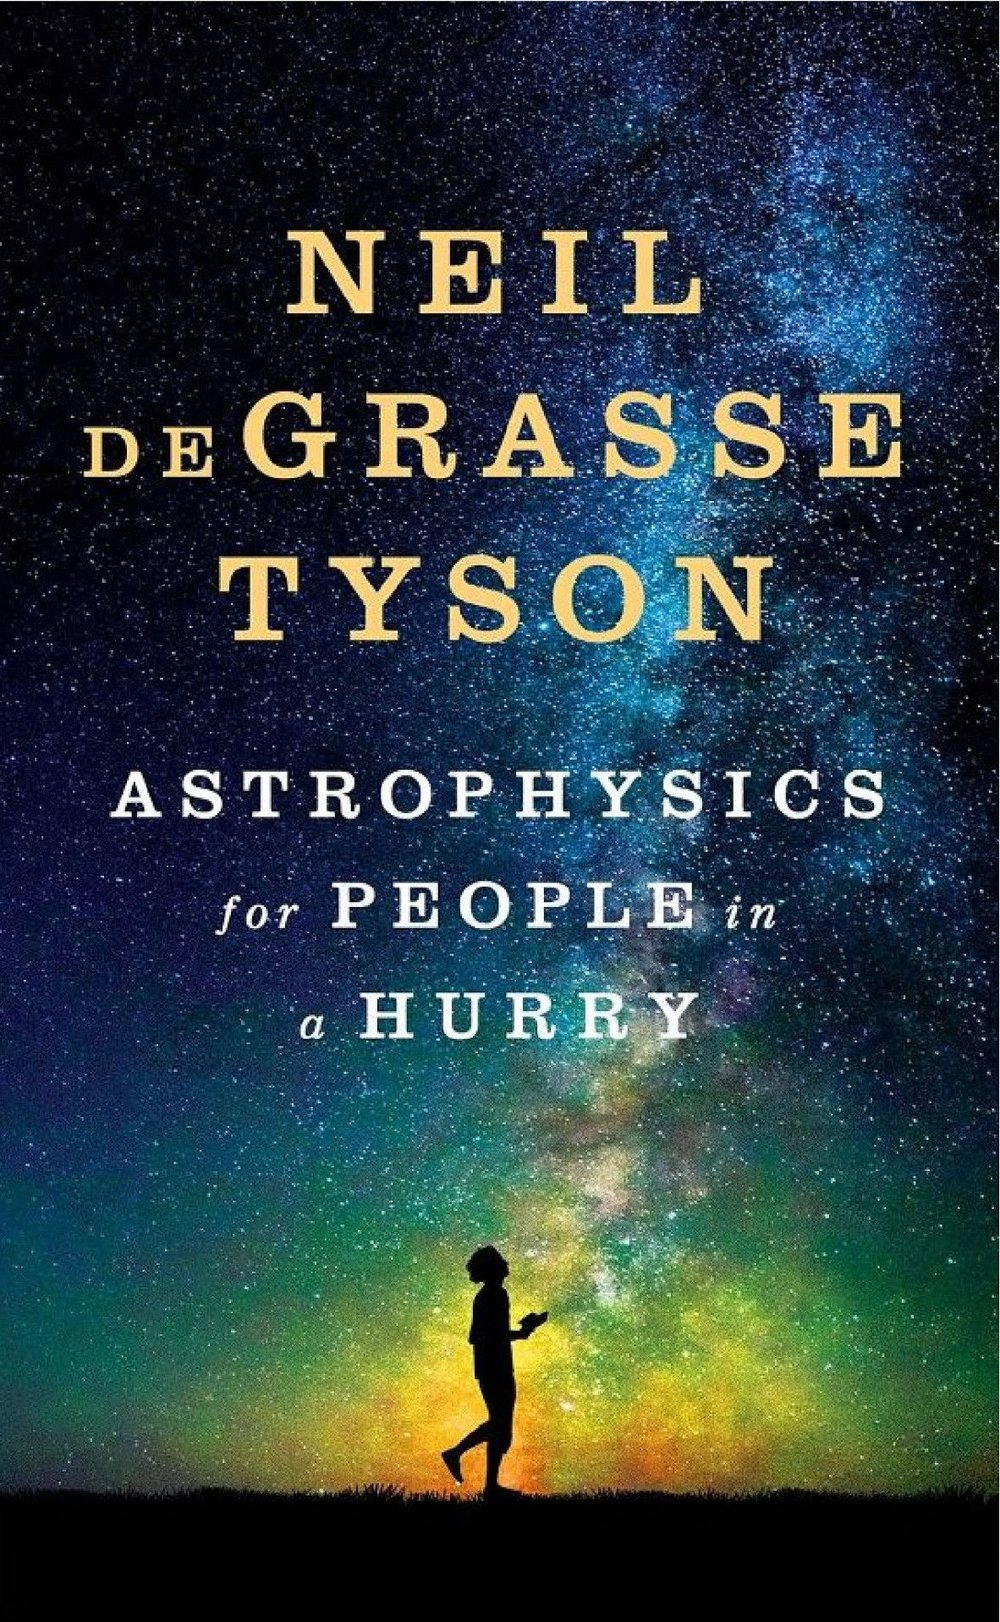 5 Books That Are Nominated for a Grammy Award in 2018: 3) Astrophysics for People in a Hurry by Neil deGrasse Tyson